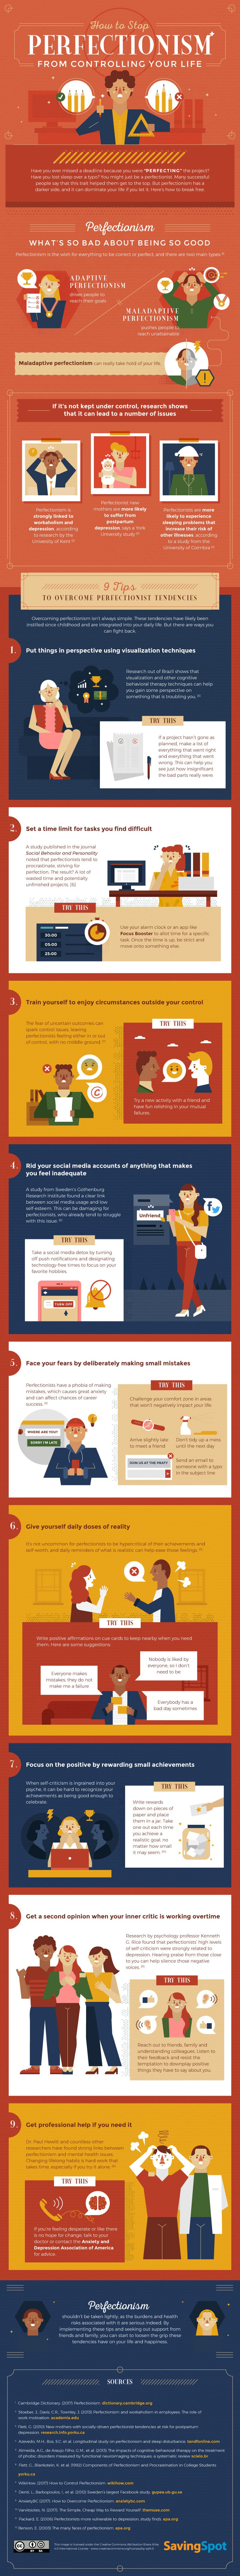 How to Stop Perfectionism From Controlling Your Life - #infographic